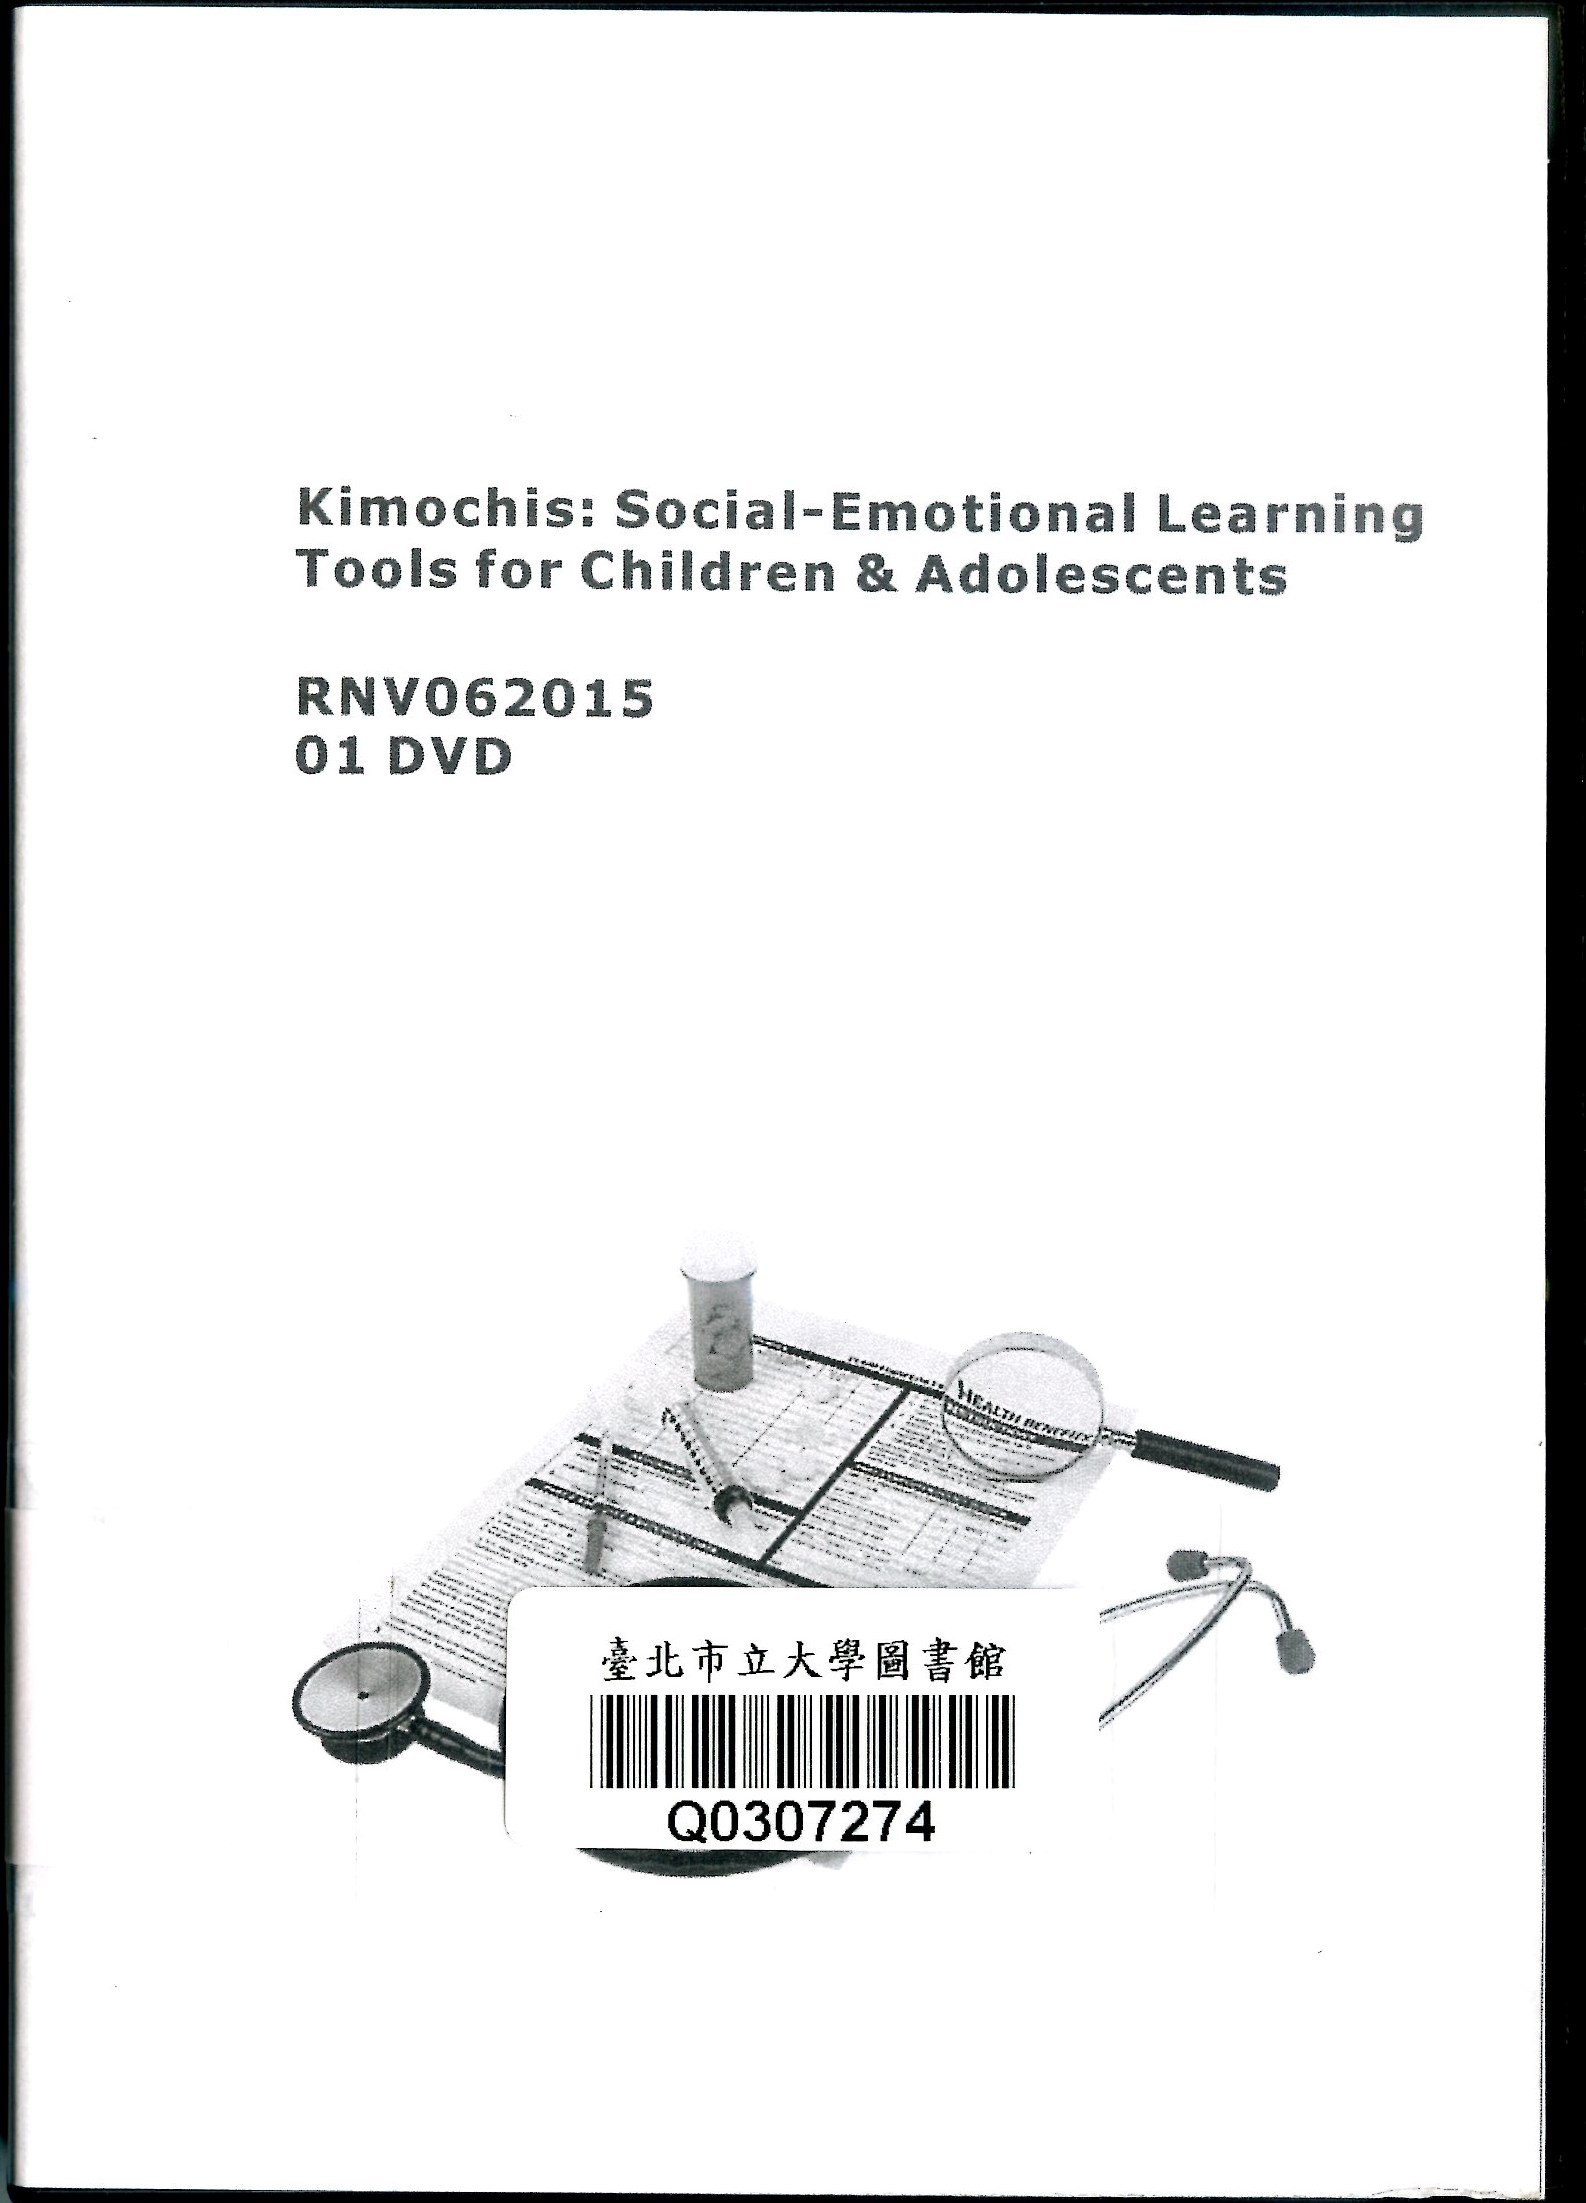 Kimochis social-emotional learning tools for children & adolescents = 兒童及青少年從情緒公仔學習社會情緒管理 /